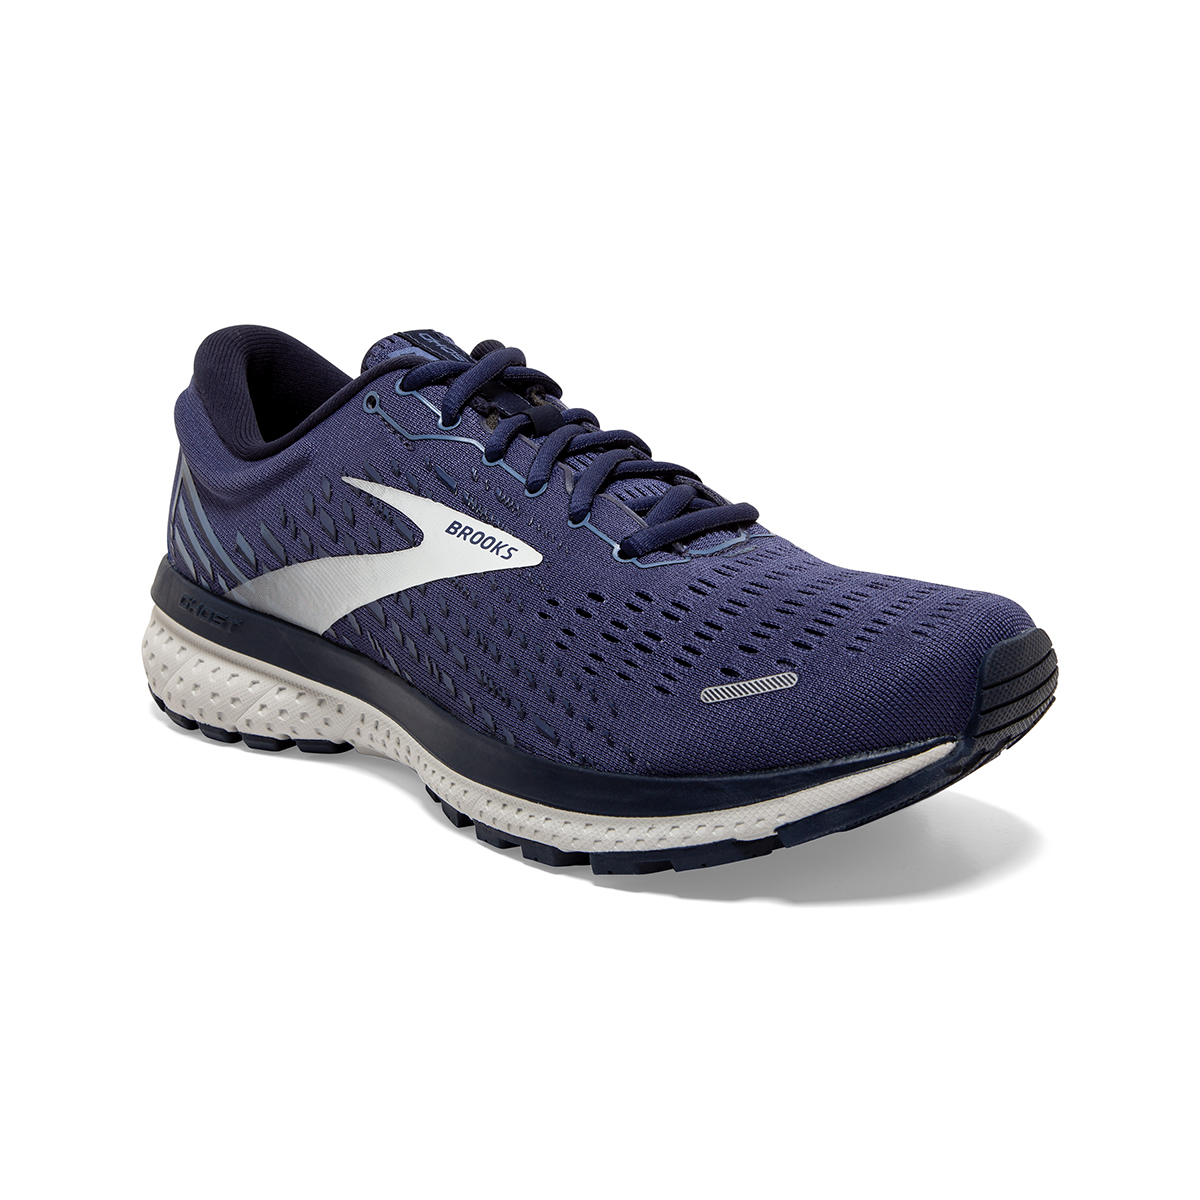 Men's Brooks Ghost 13 Running Shoe - Color: Deep Cobalt/Grey - Size: 7 - Width: Regular, Deep Cobalt/Grey, large, image 4